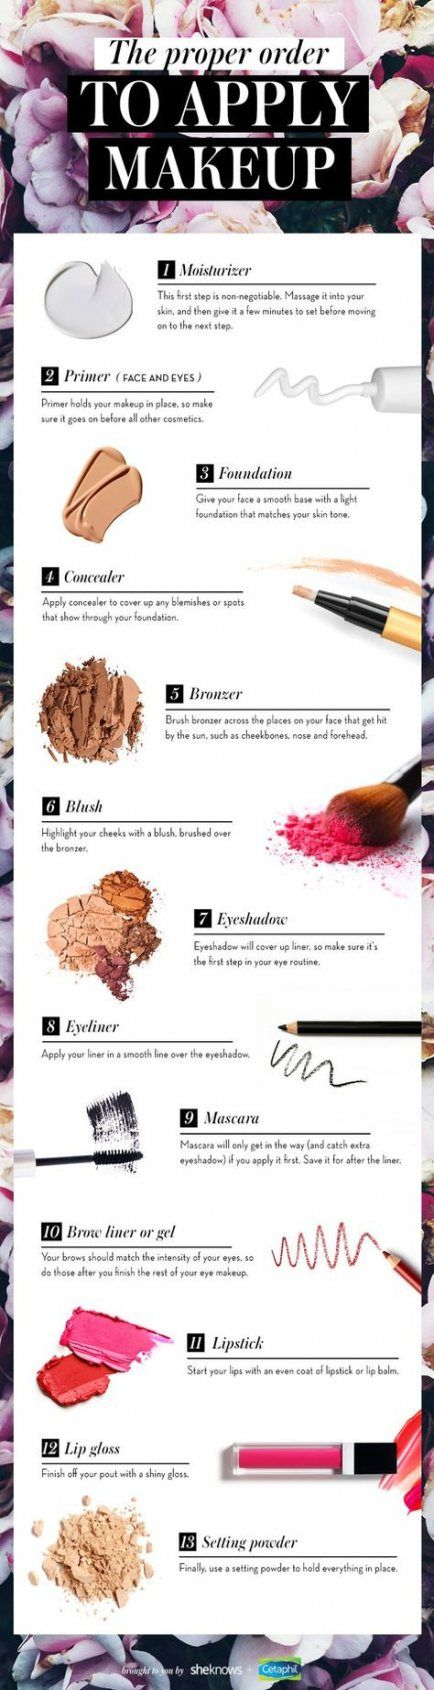 49+ ideas for makeup face contouring girls How to apply